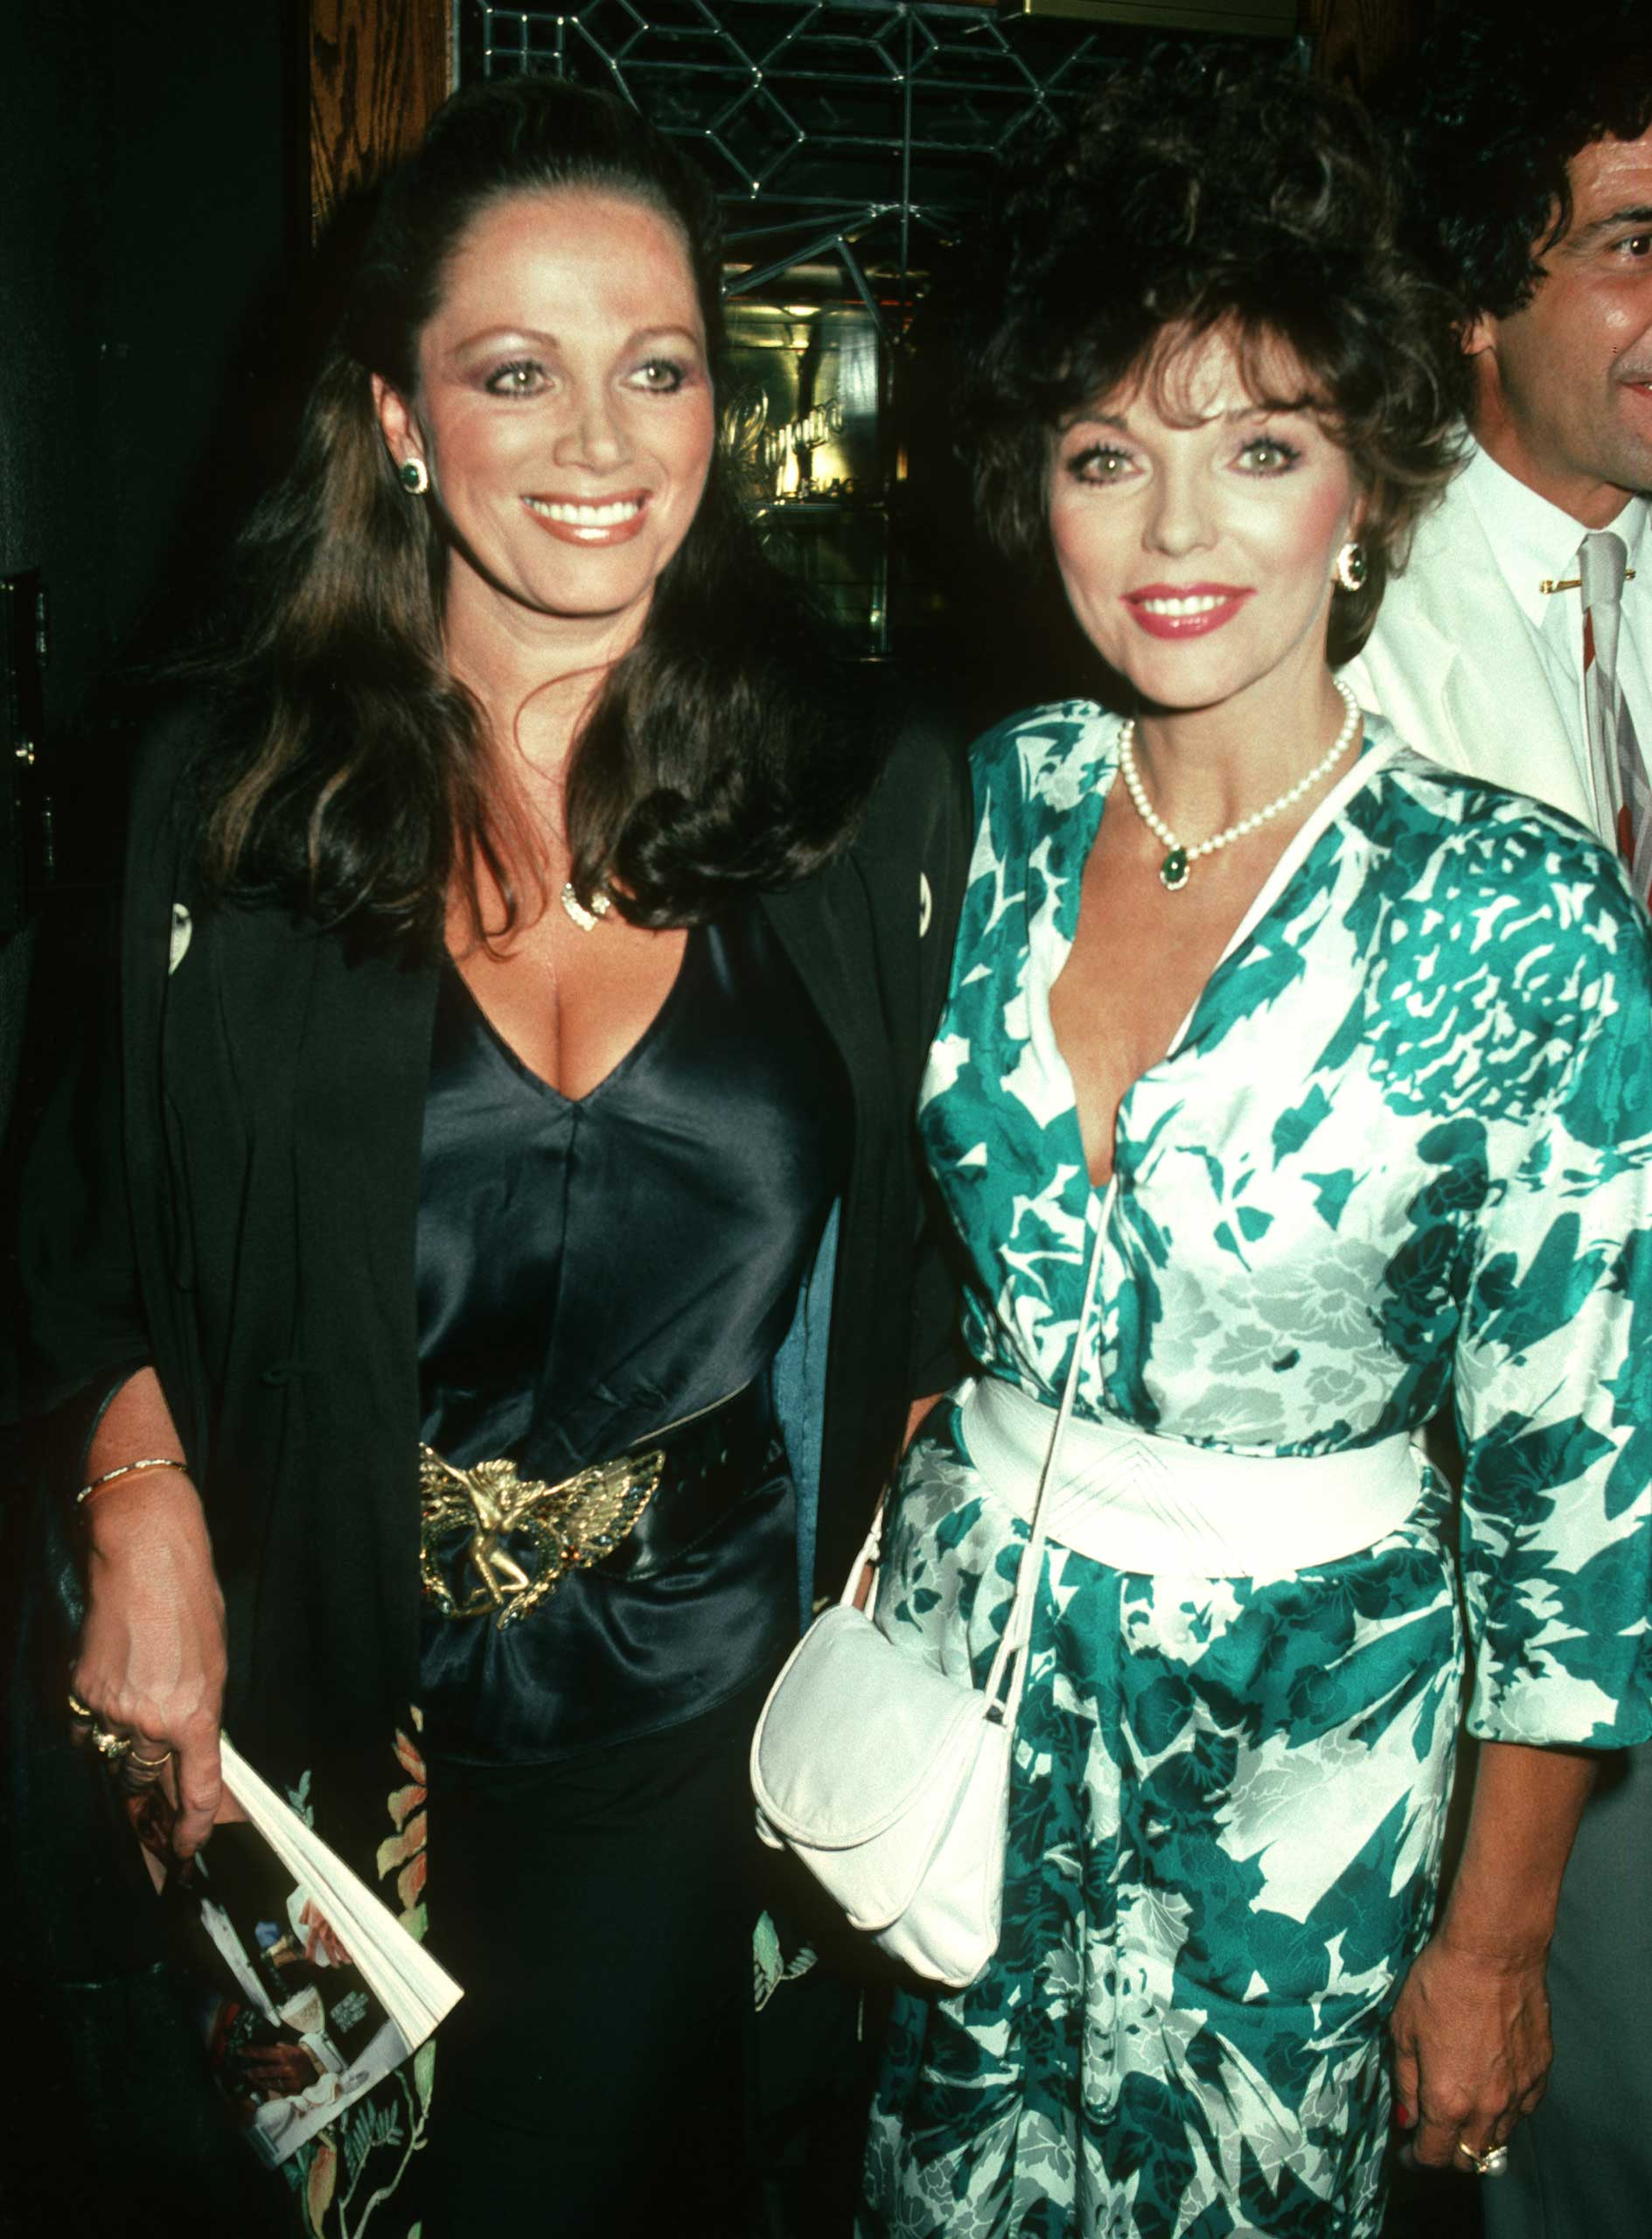 THE COLLINS SISTERS: Joan, the eldest, gained fame as Alexis Carrington Colby on television's 'Dynasty.' Jackie tried and failed to start a film career, but found great success as a writer of romance novels.